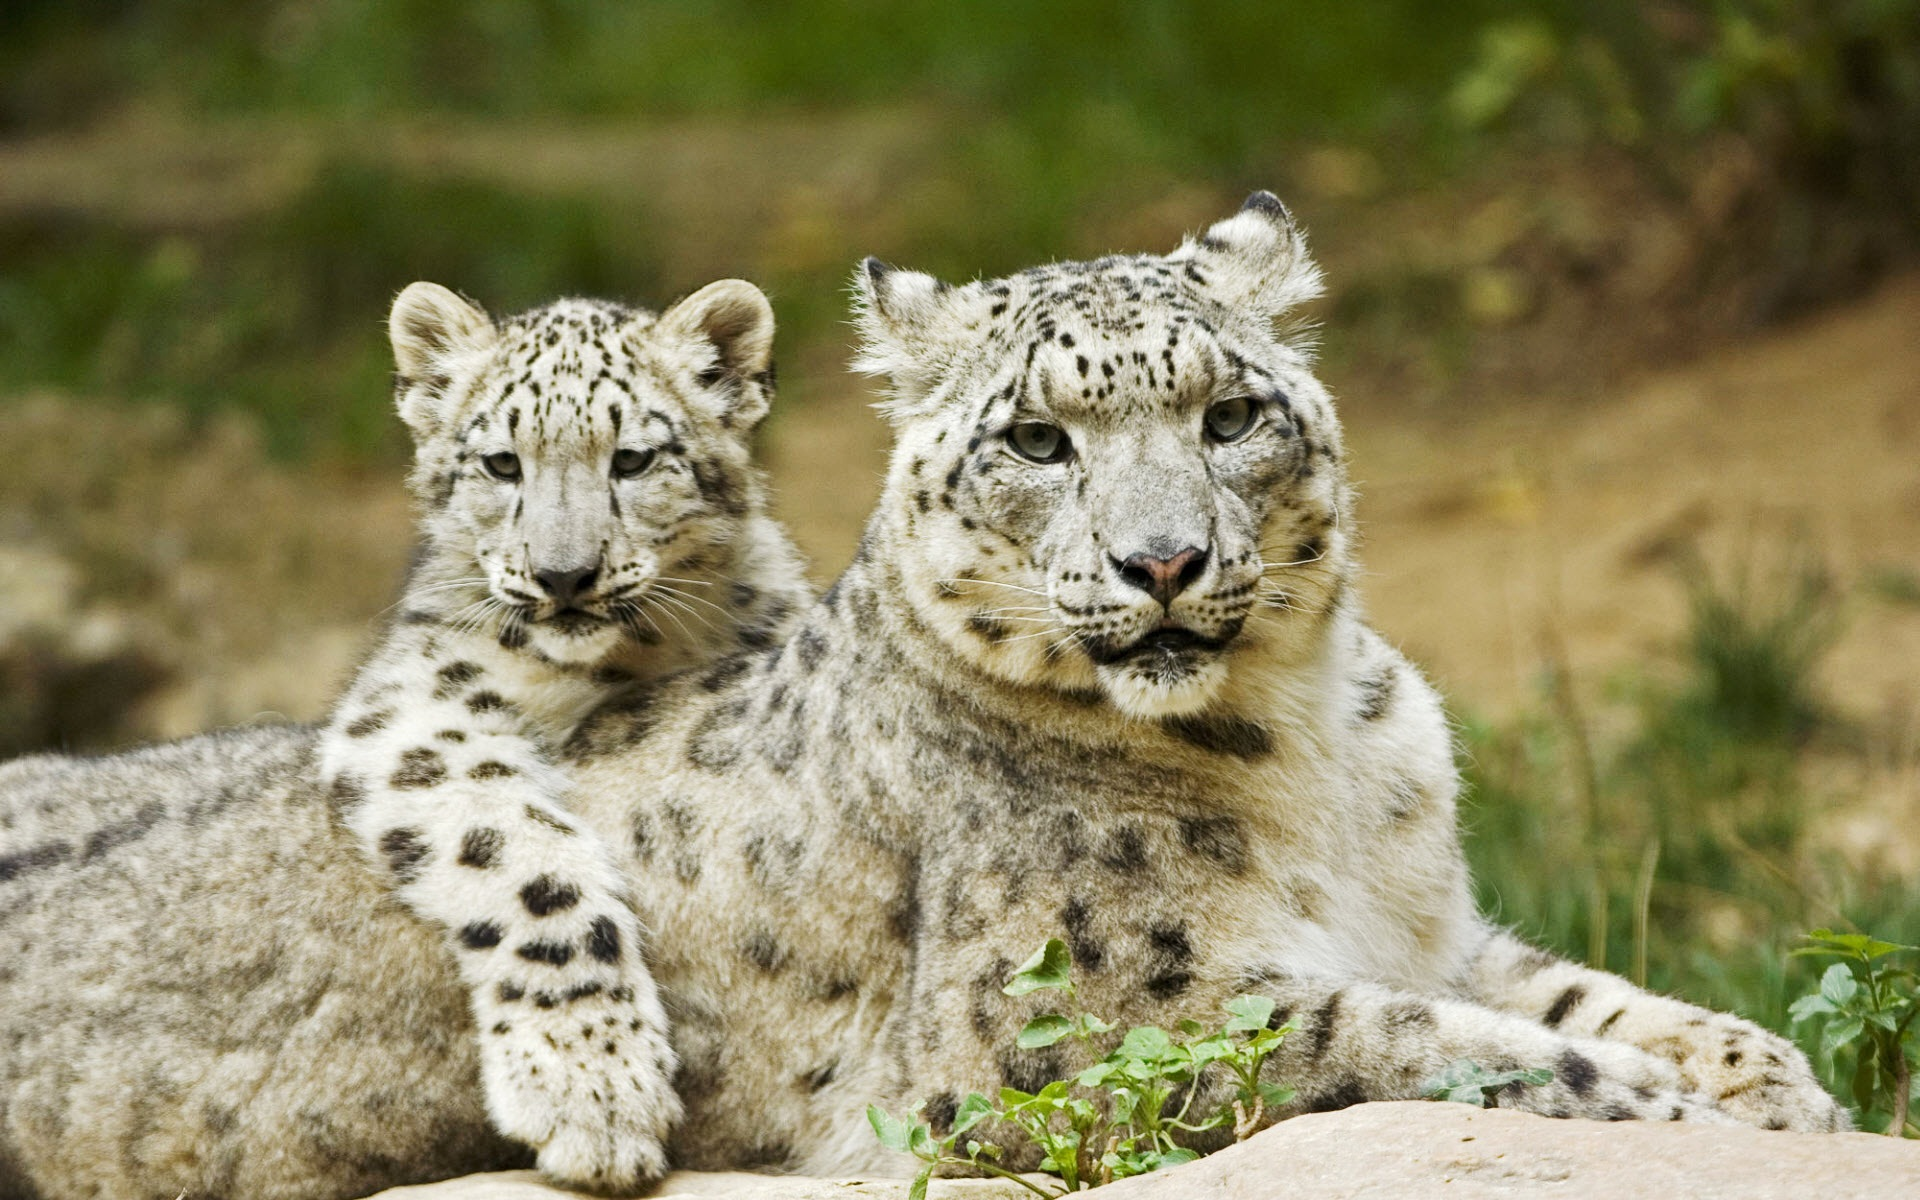 Includes Snow Leopard Mother And